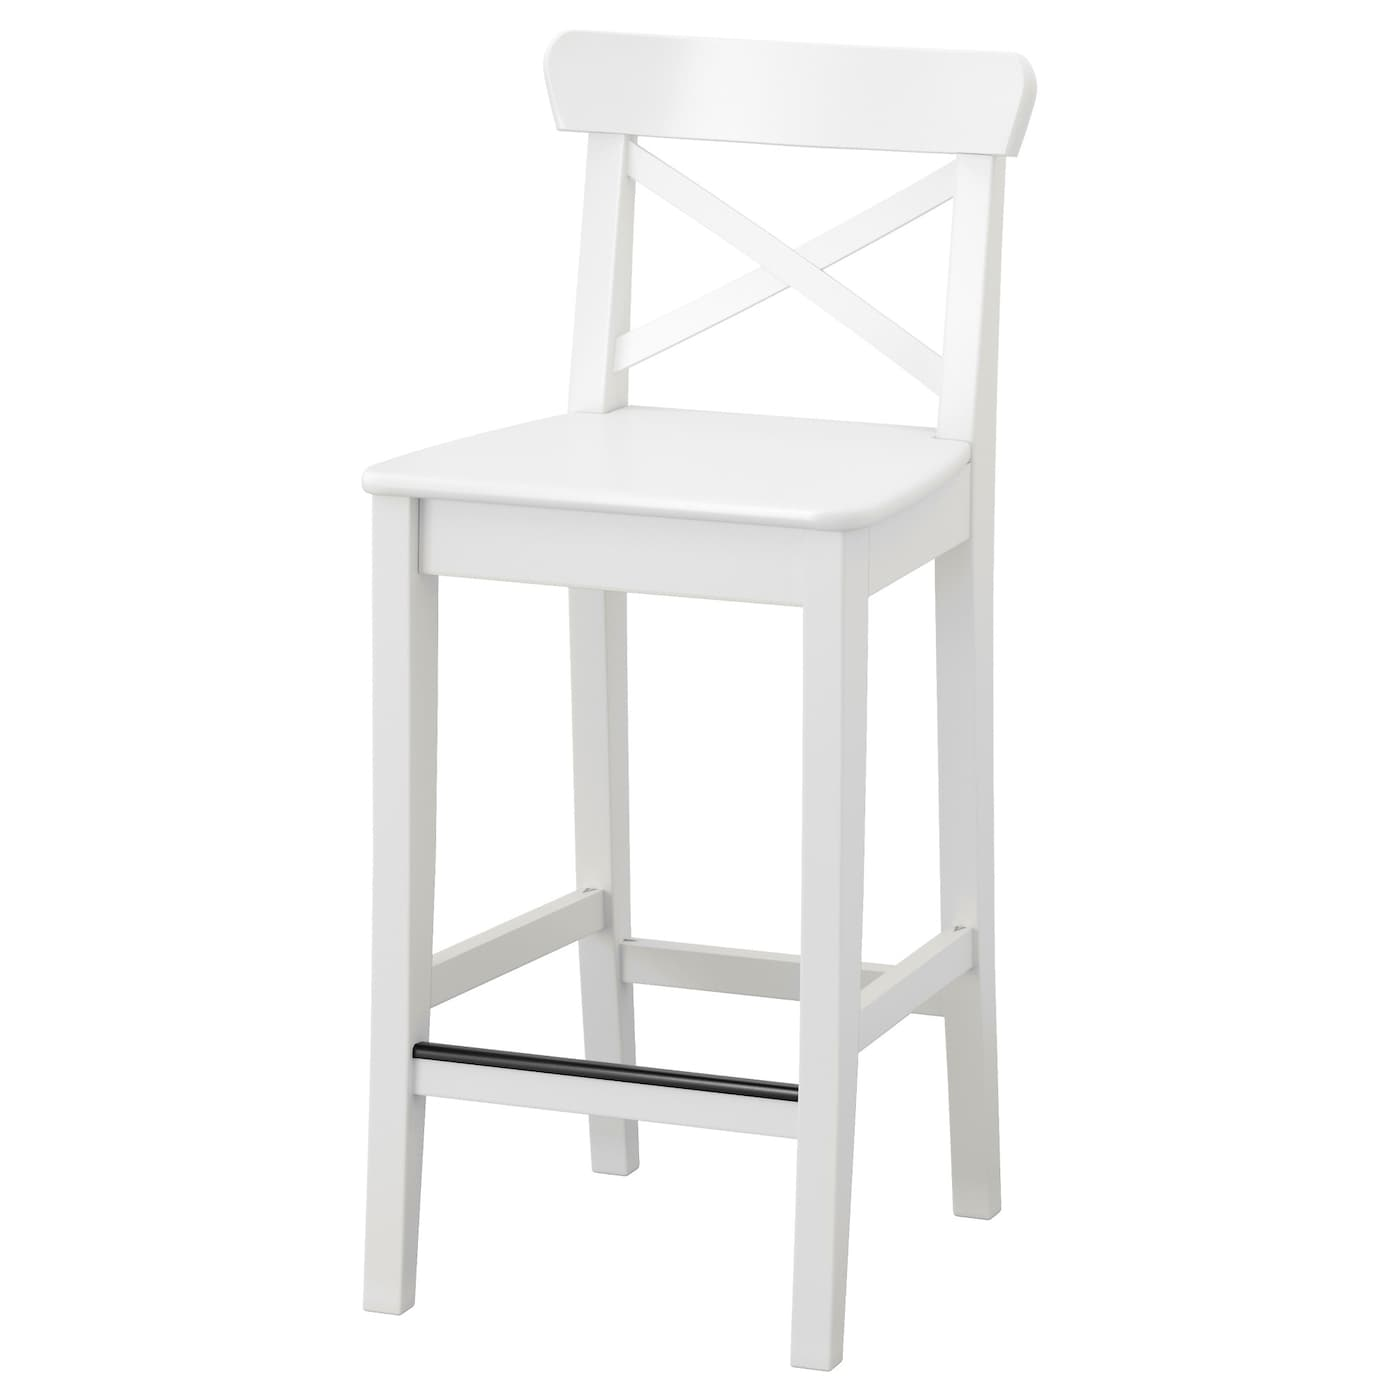 ingolf bar stool with backrest white 63 cm ikea. Black Bedroom Furniture Sets. Home Design Ideas